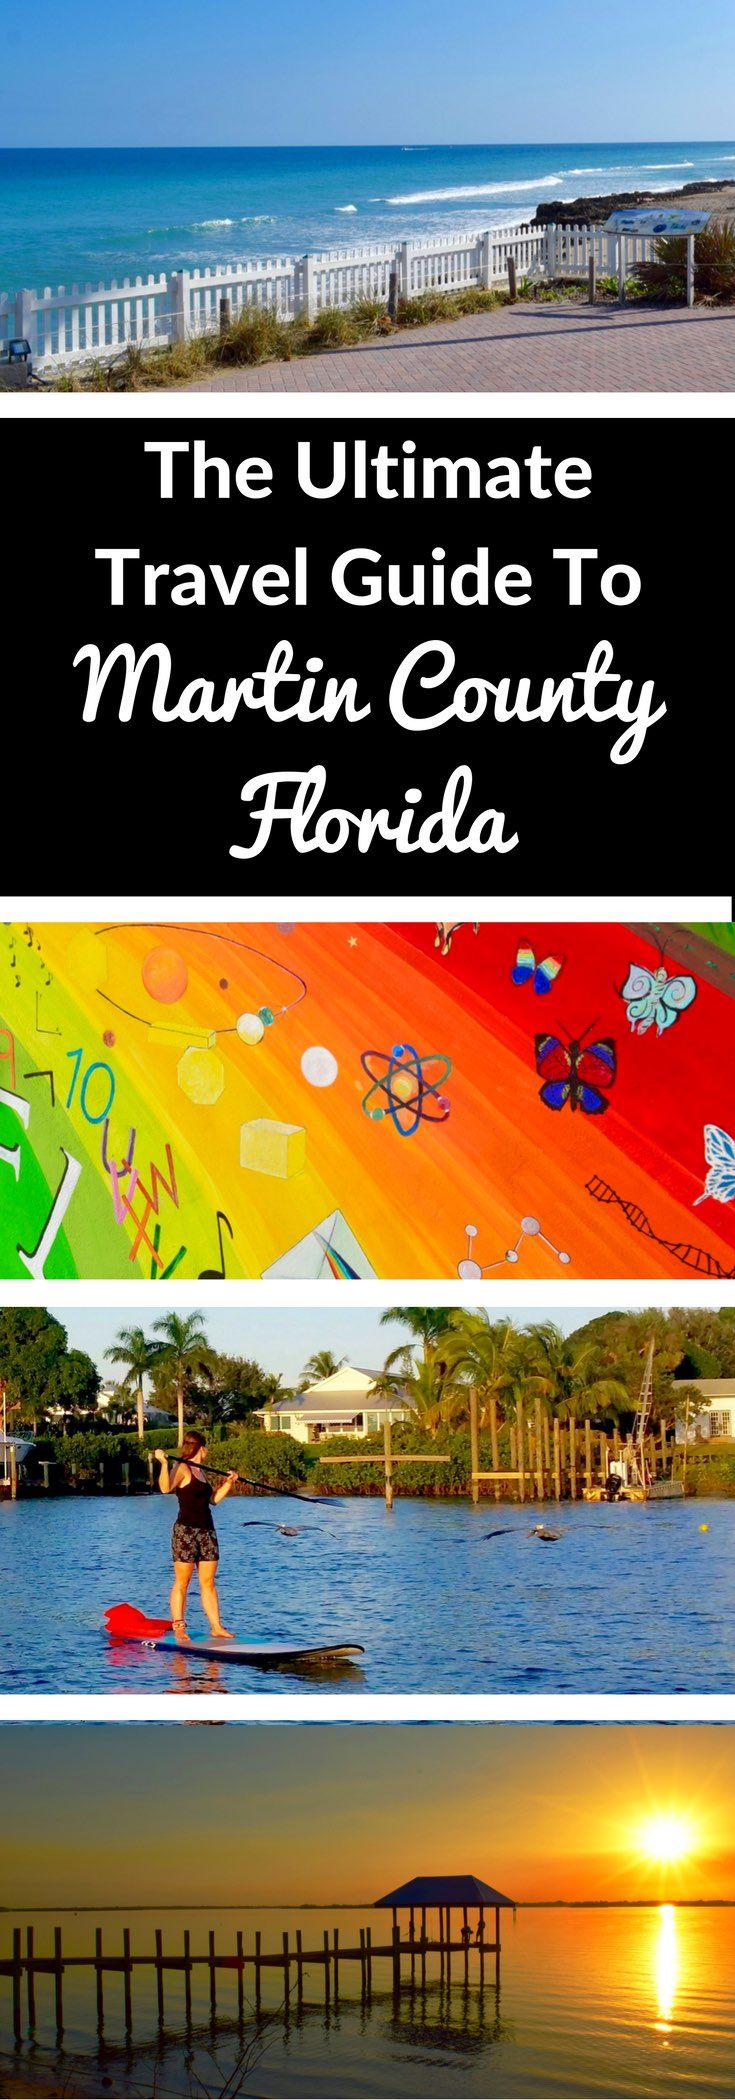 Indiana martin county shoals - The Ultimate Travel Guide To Martin County Florida